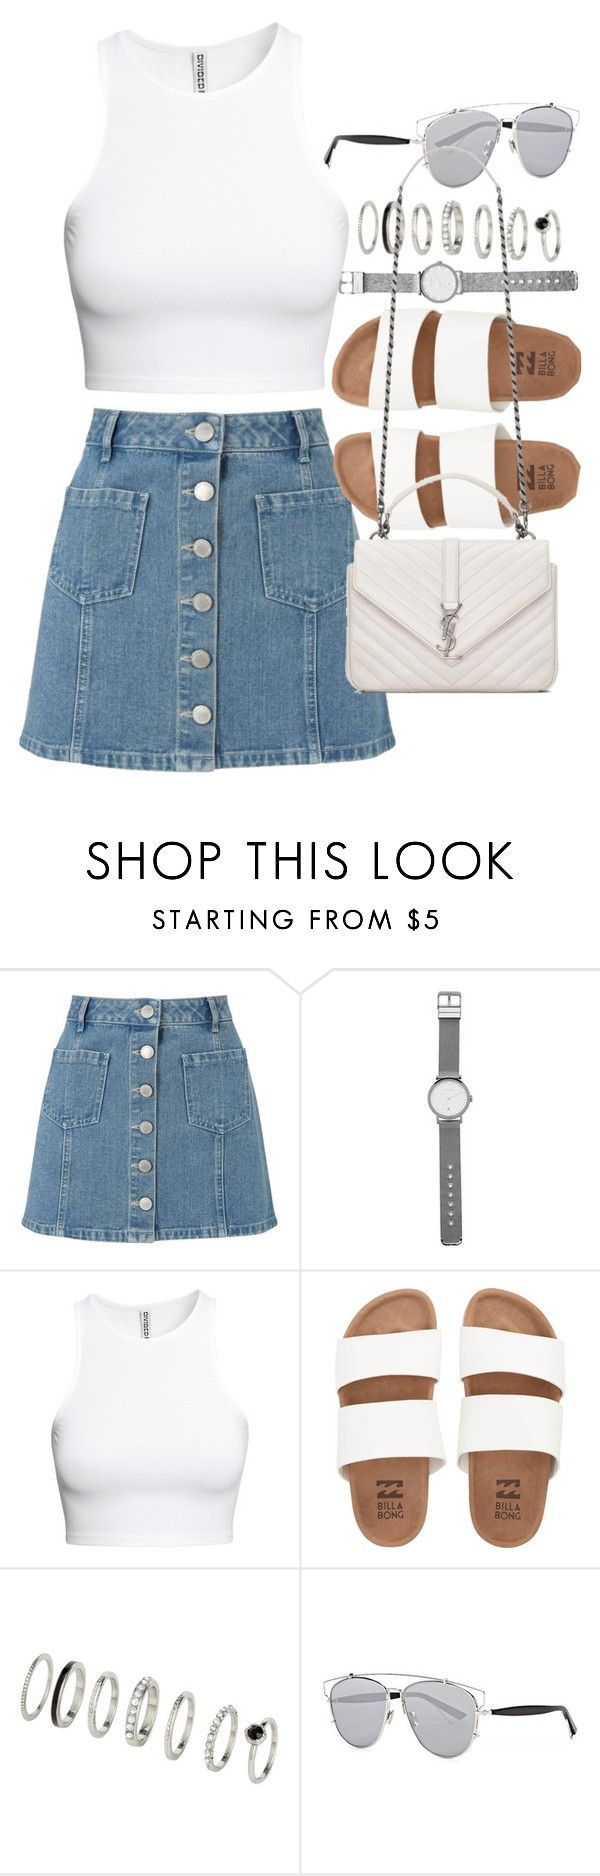 """""""Outfit with denim skirt and white tank top"""" by ferned ❤ liked on Polyvore featuring Miss Selfridge, Witchery, H&M, Billabong, Christian Dior and Yves Saint Laurent"""